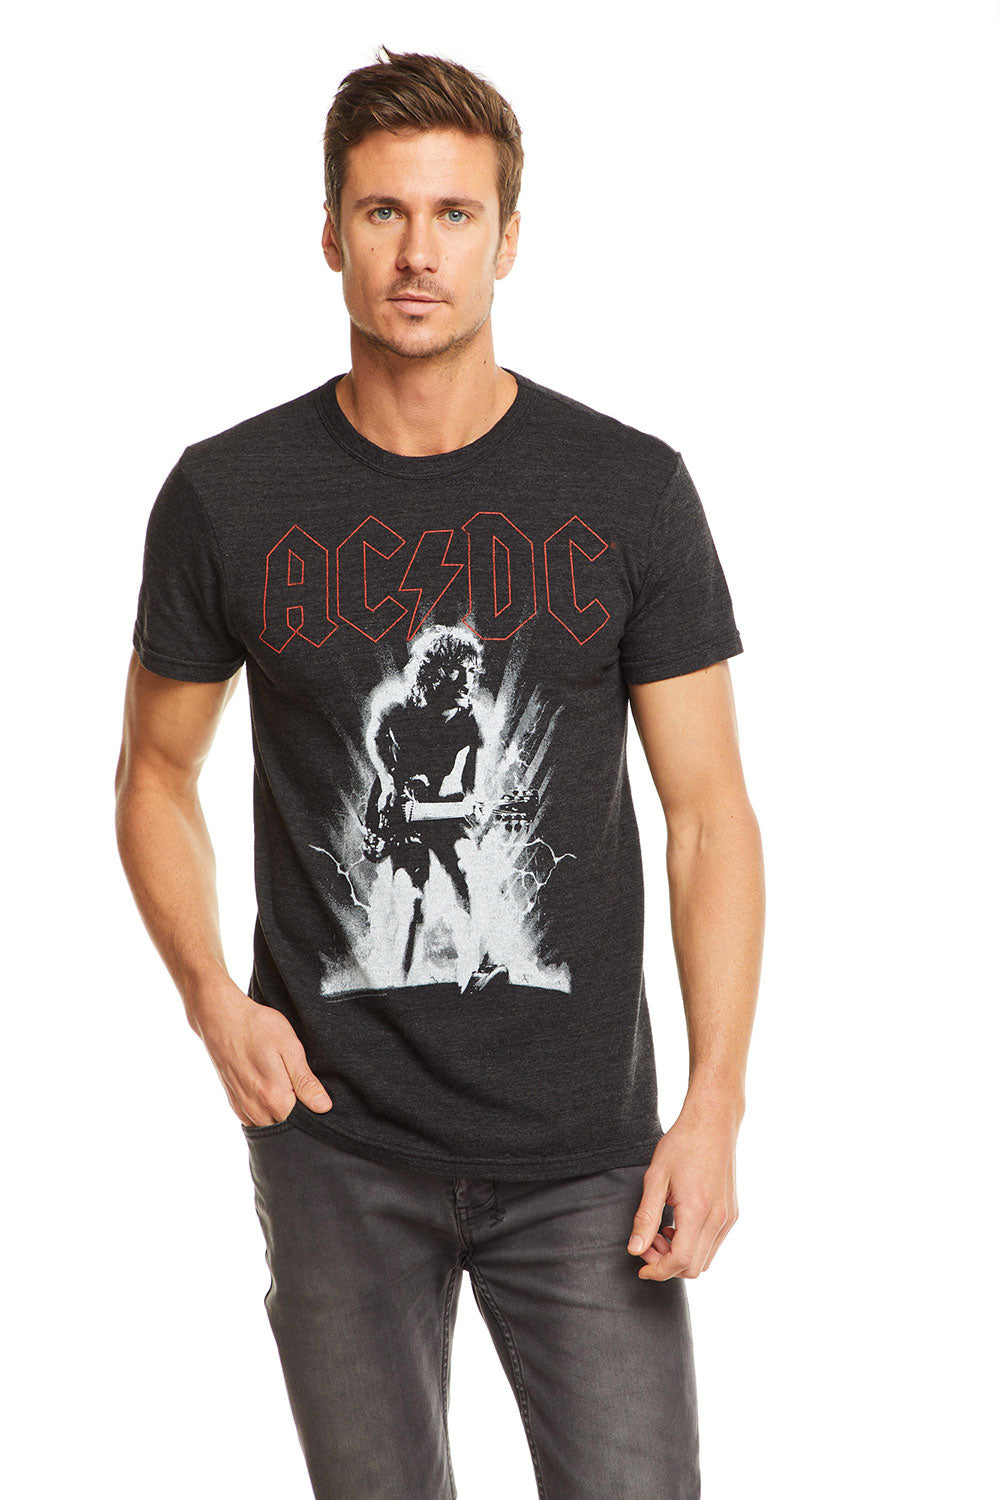 ACDC - Ballbreaker, MENS, chaserbrand.com,chaser clothing,chaser apparel,chaser los angeles